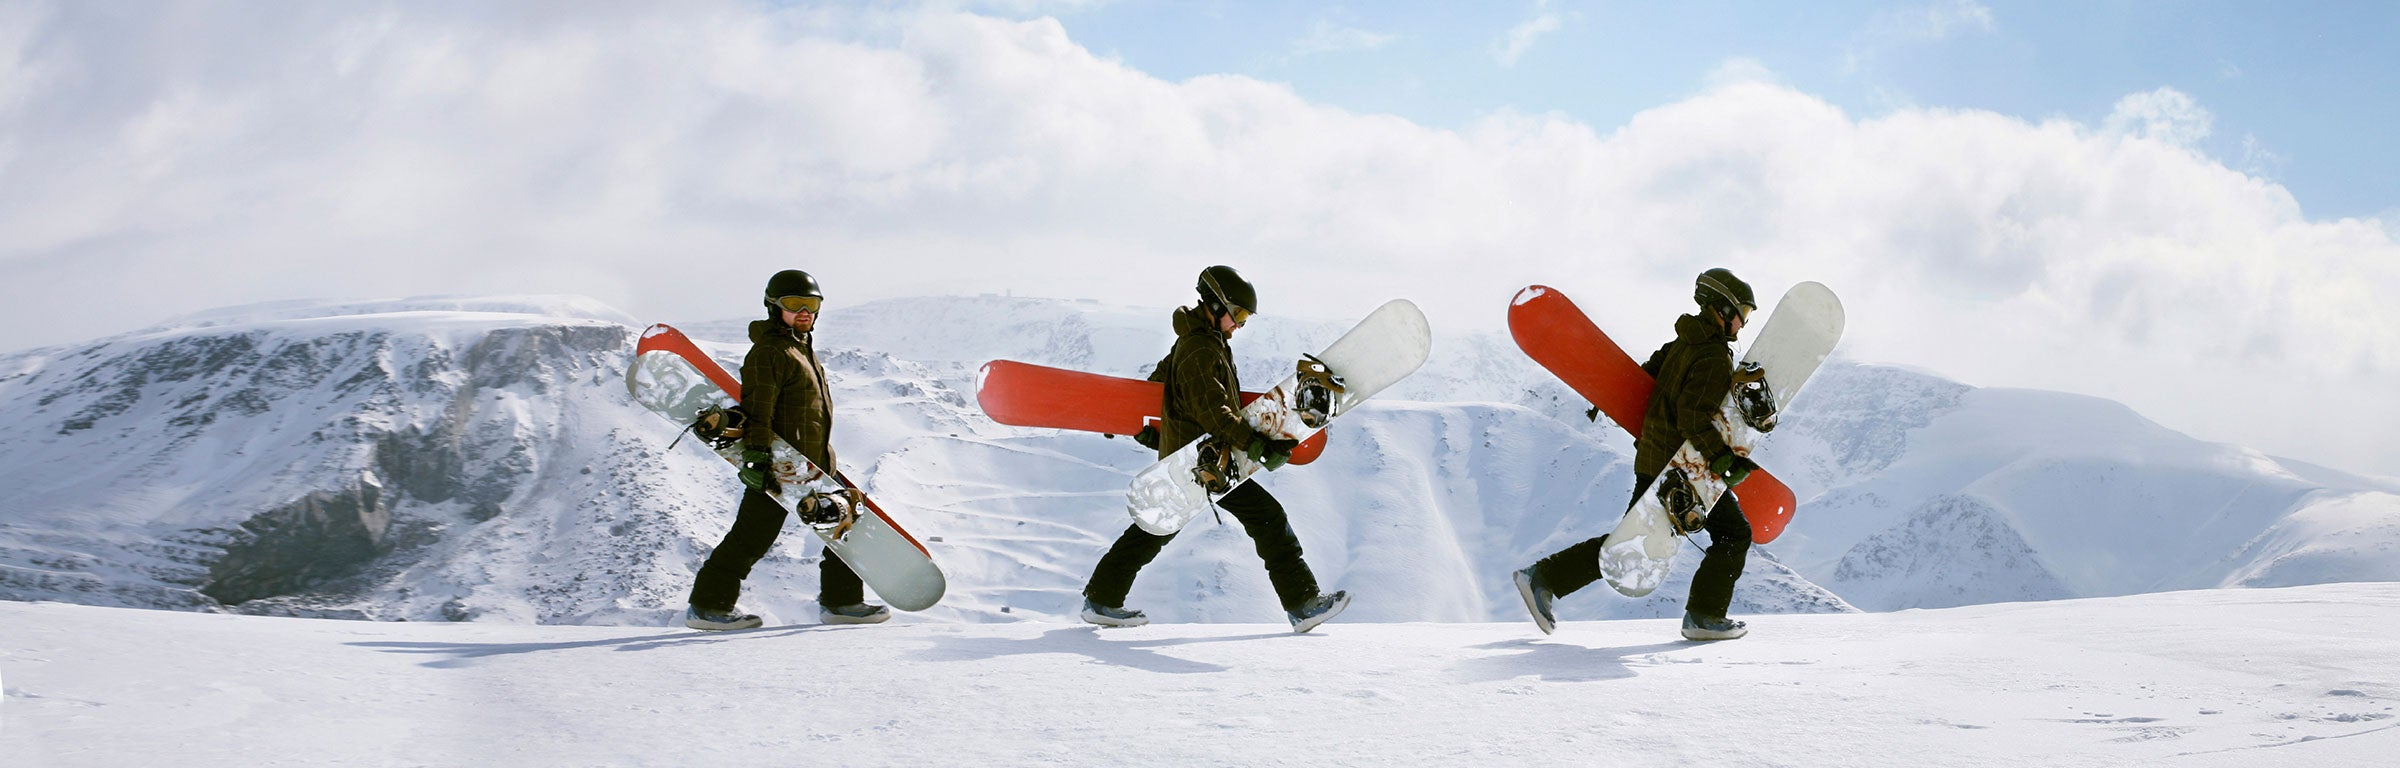 Snow Activities Photo